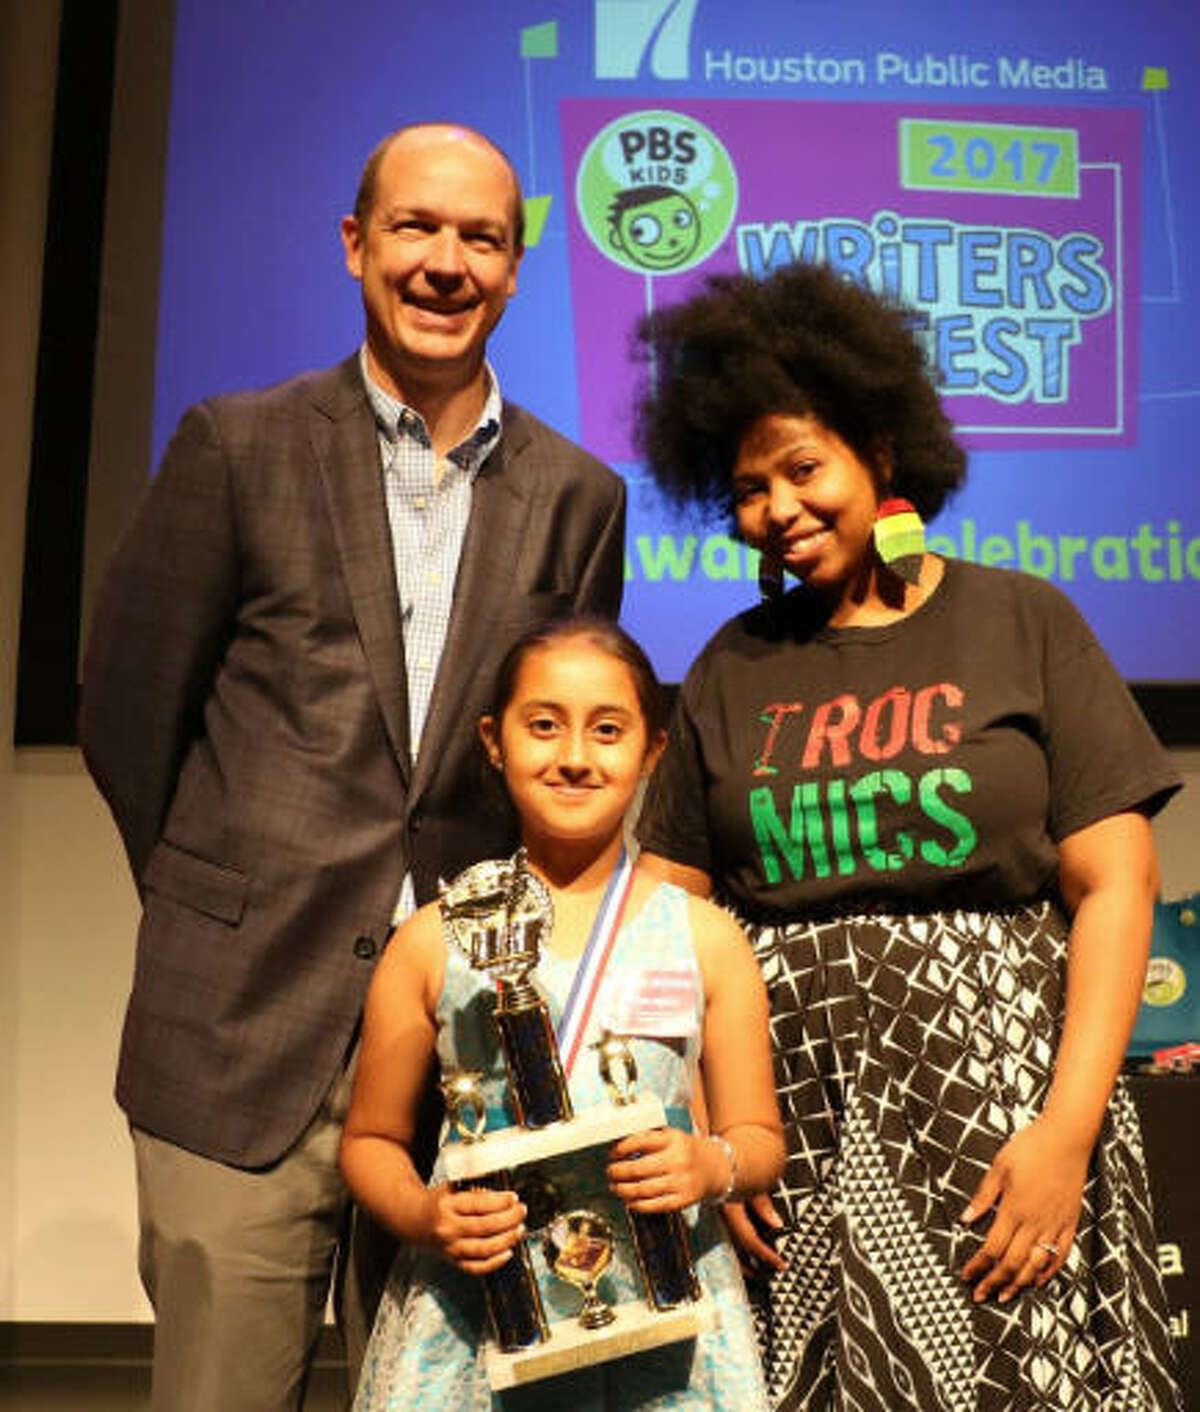 Priya Sekhri, a third-grader at Barbara Bush Elementary, won first-place in the 2017 Houston Public Media PBS KIDS Writers Contest. From left are Josh Adams, executive director of operations of Houston Public Media, Sekhri and Houston's Poet Laureate Deborah D.E.E.P. Mouton